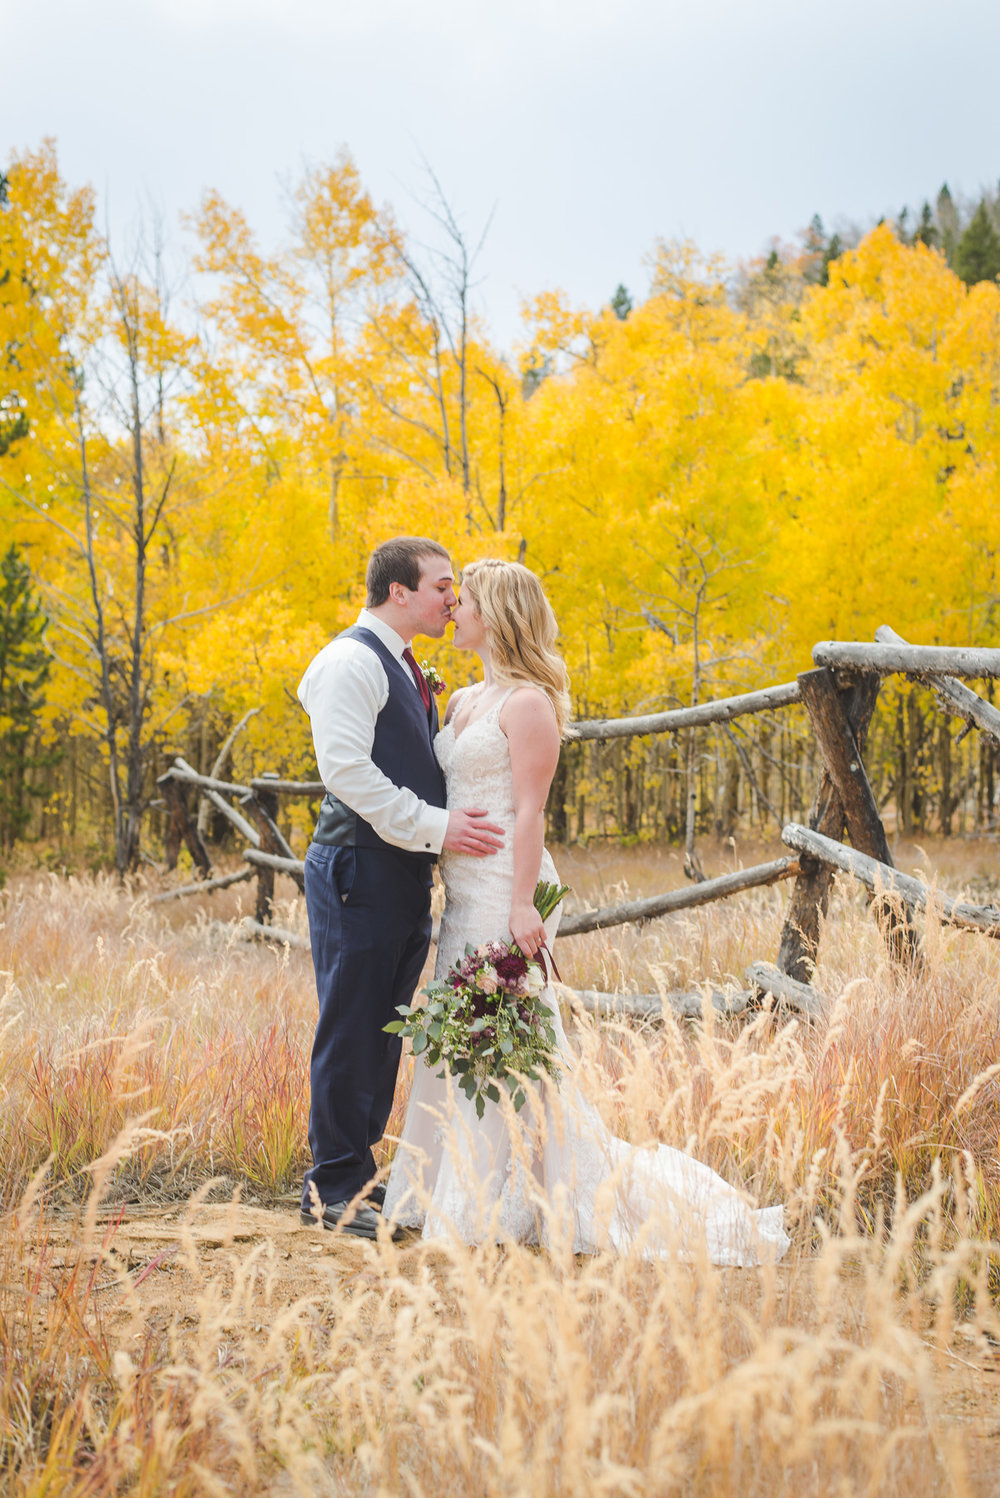 Bride and groom in front of wood fence and yellow trees | Autumn elopement in Breckenridge, Colorado | Summit Mountain Weddings